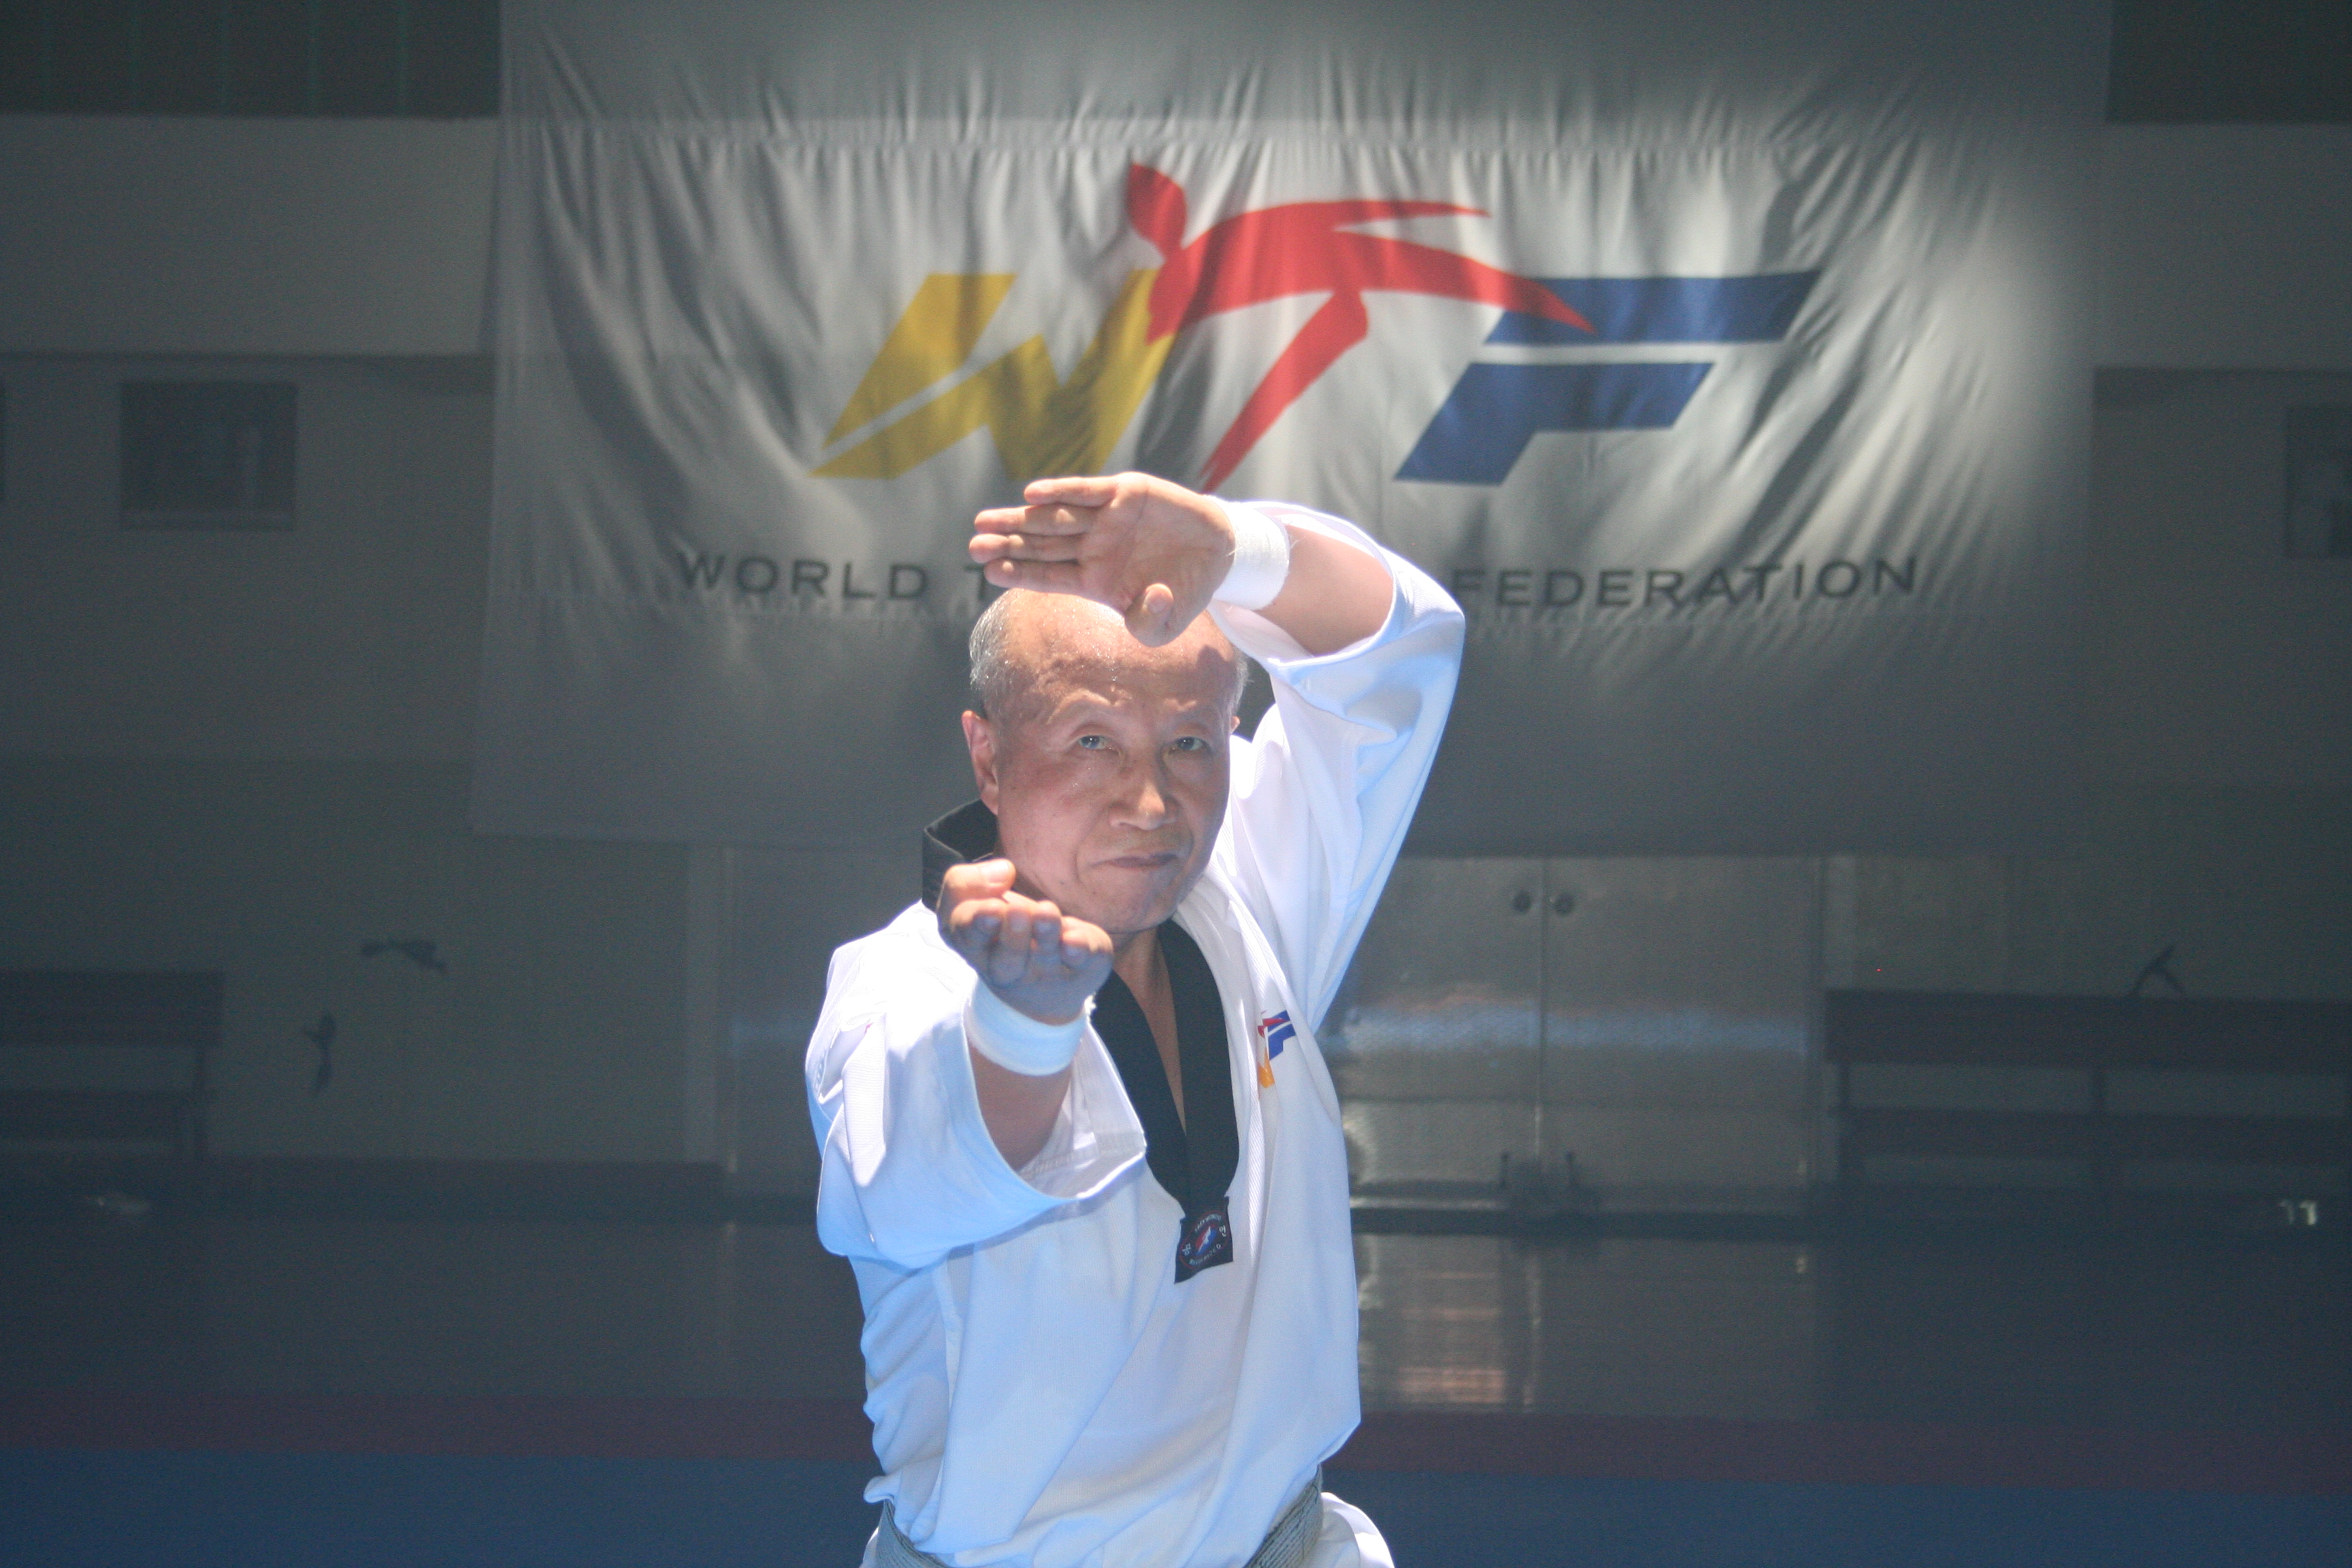 Master Lee Kyu-hyung, a taekwondo professor of Keimyung University, performs a poomsae demonstration for the WTF's promotional film at the Midong Elementary School in Seoul, Korea, on July 12, 2008.